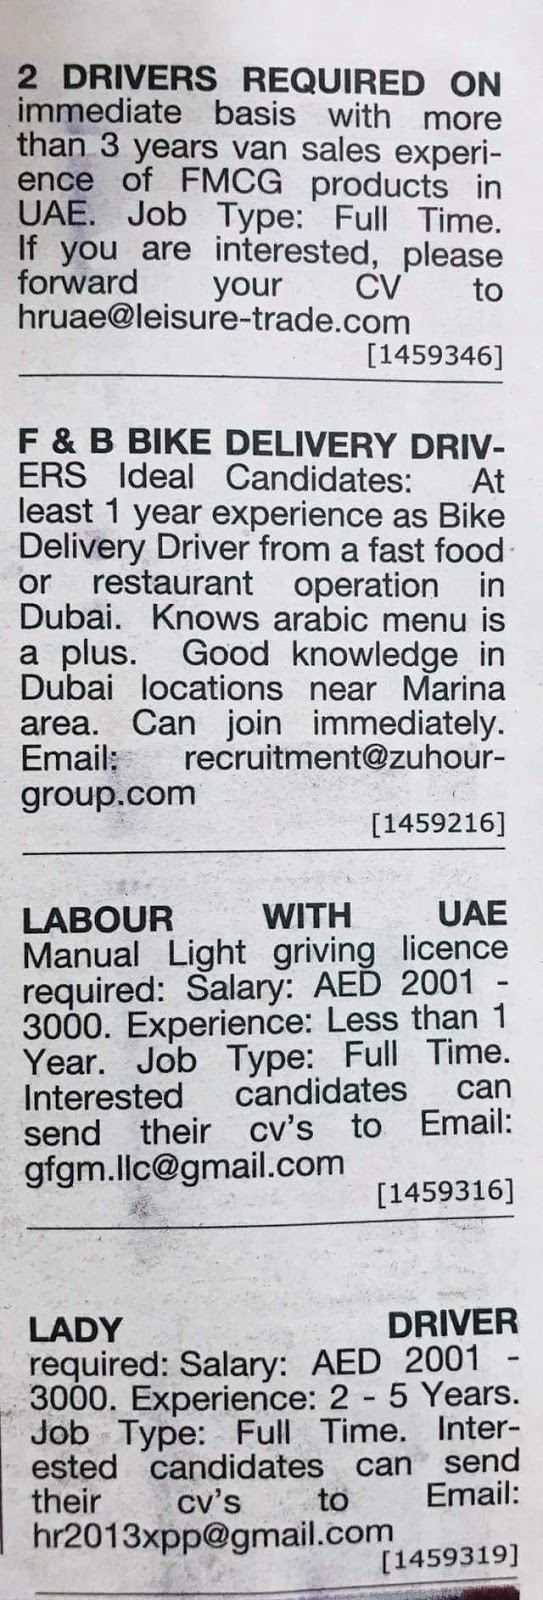 Required Drivers & Bike Drivers Male & Female & Labour for